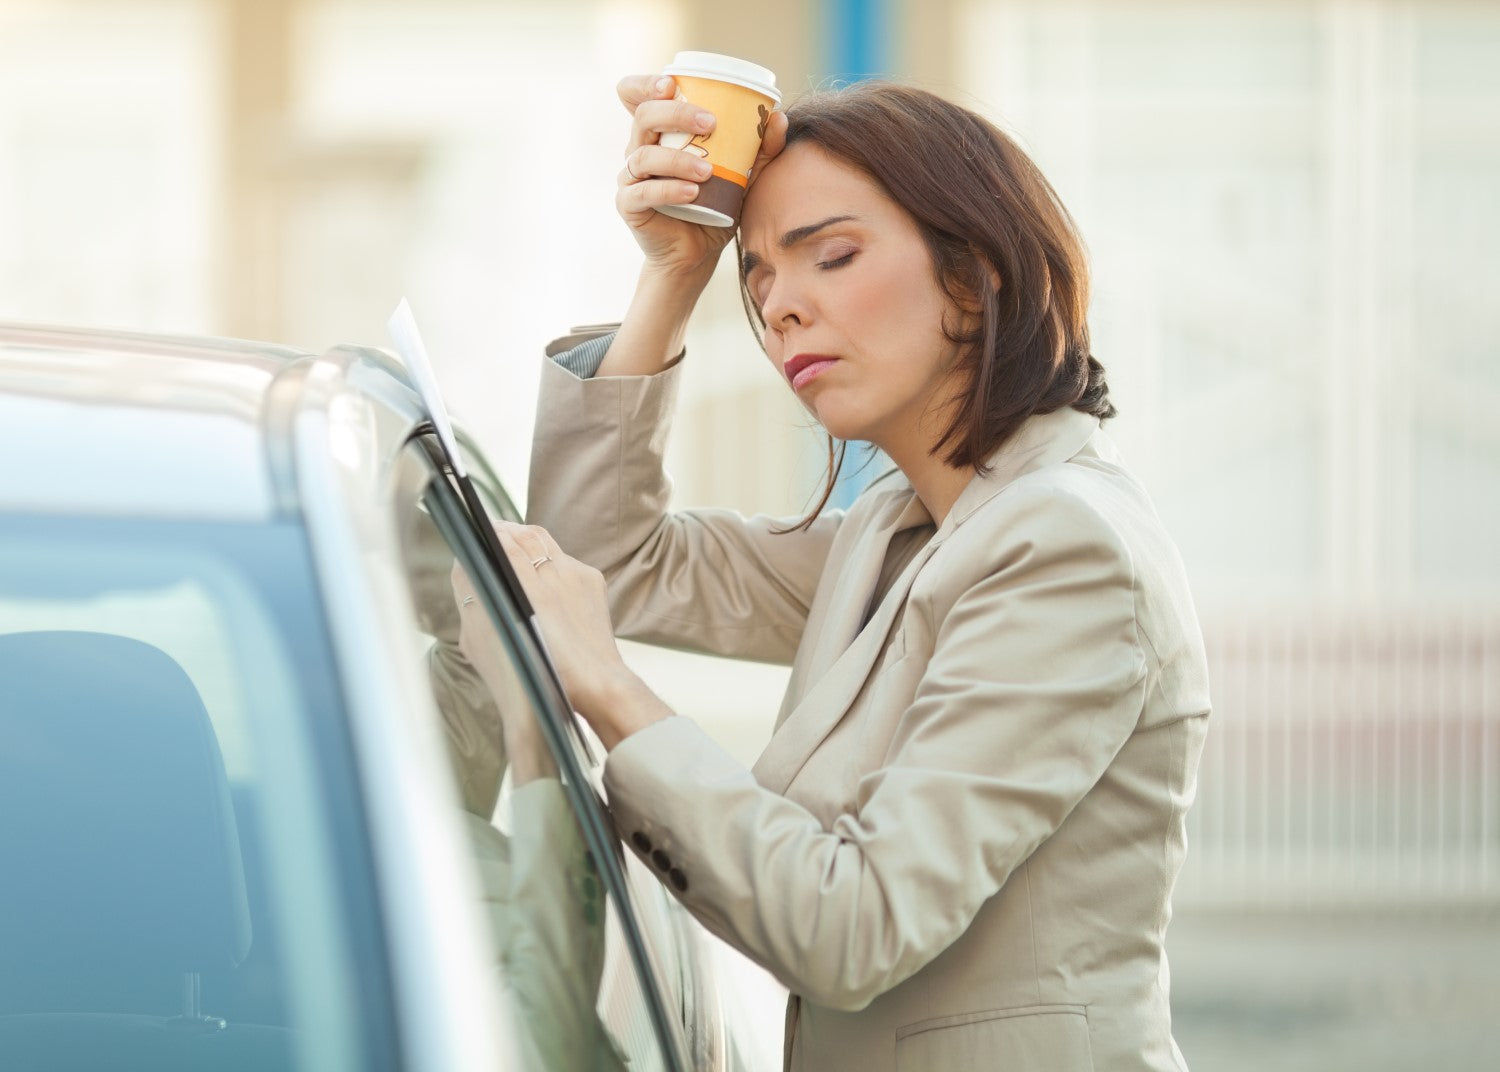 stressed woman holding a coffee